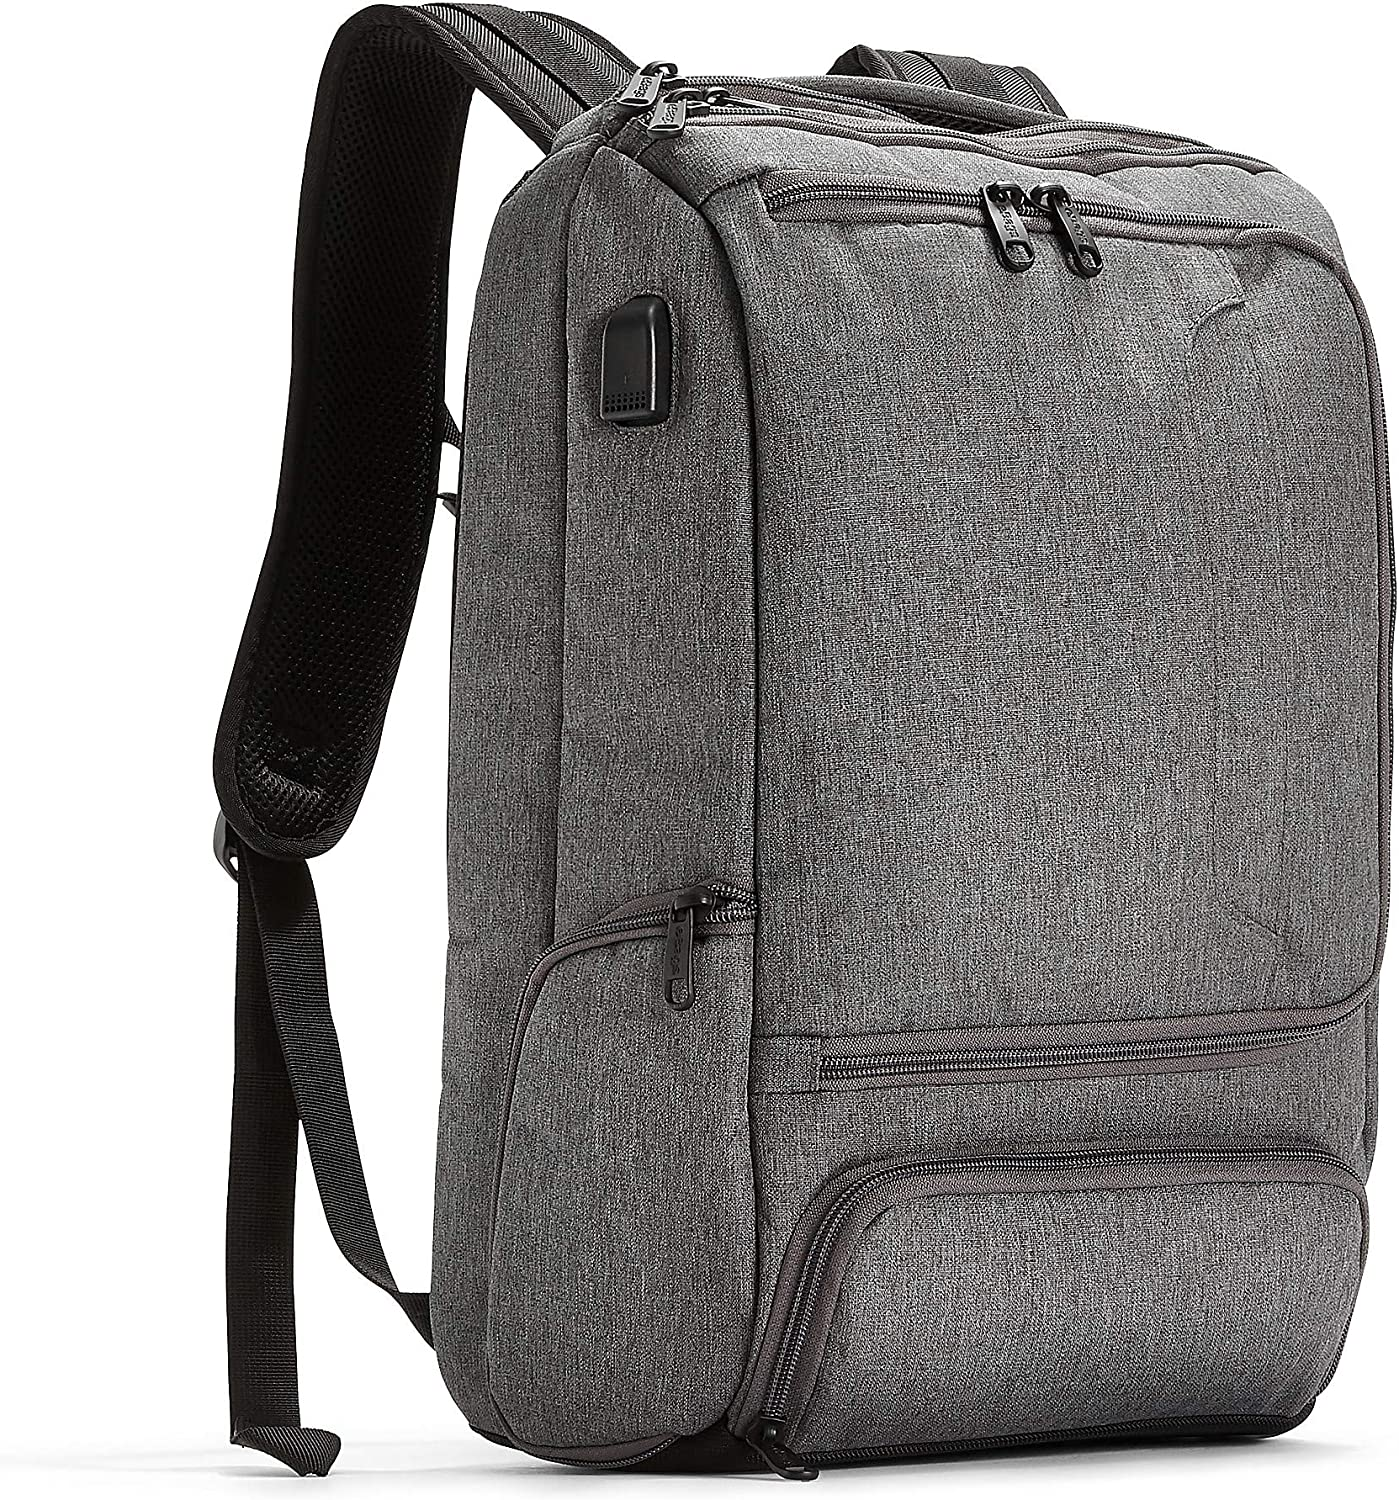 eBags Pro Slim USB Laptop Backpack (Heathered Graphite w/USB)